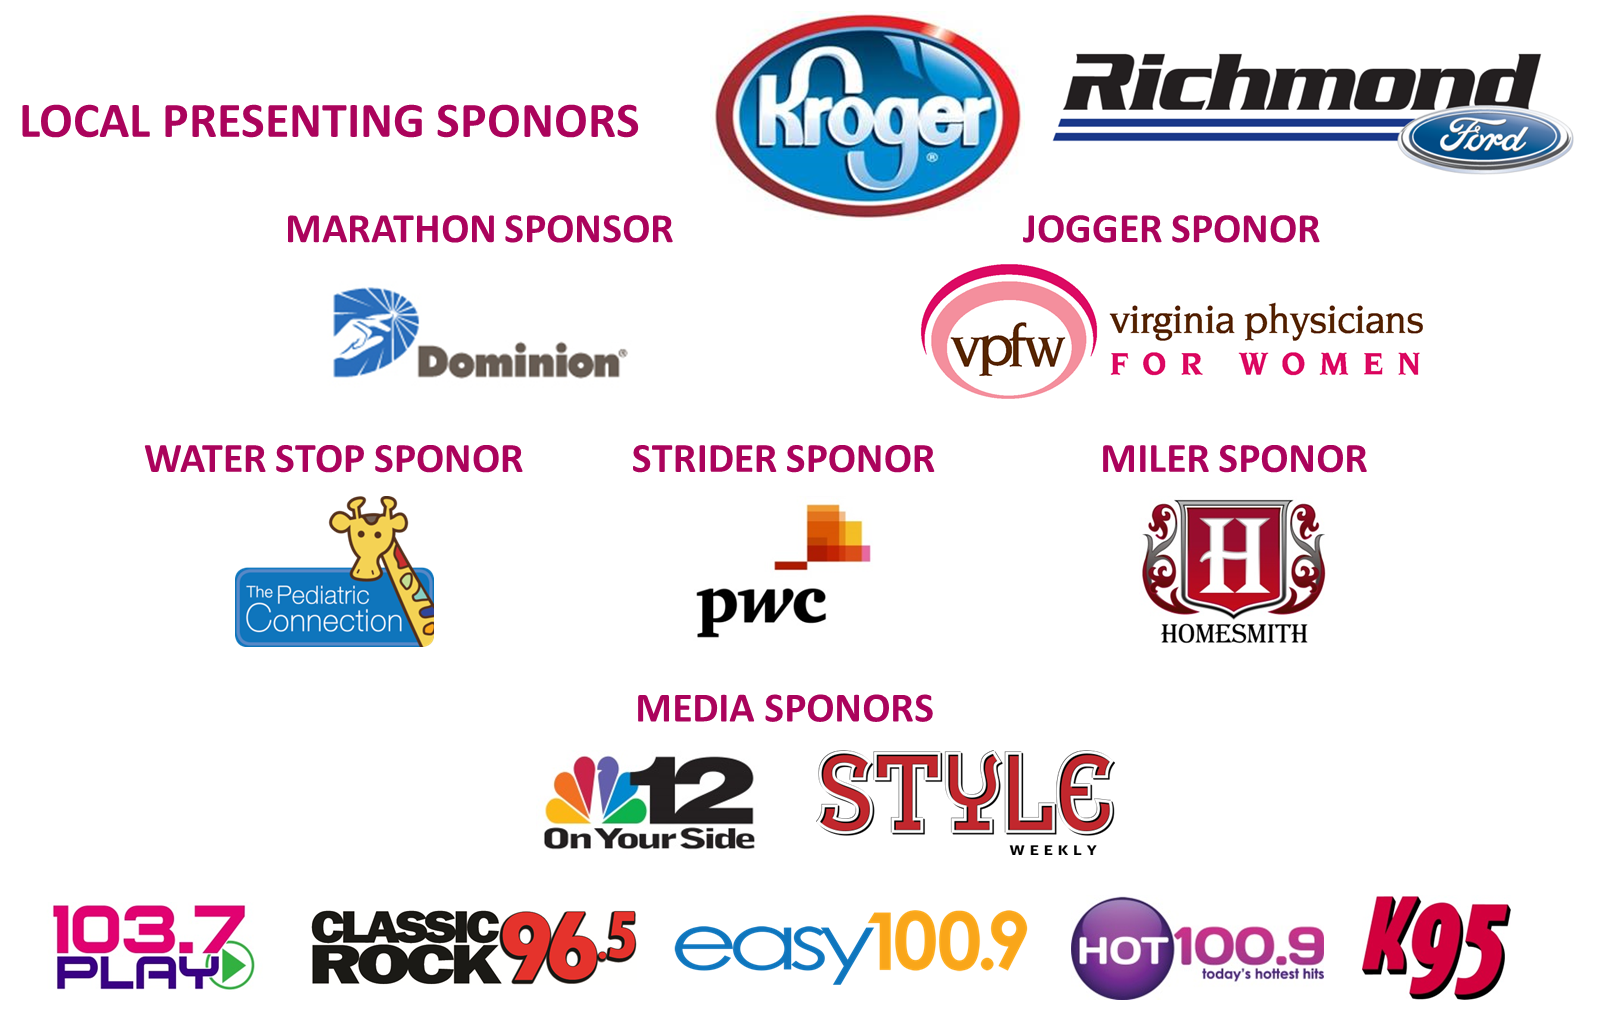 2015 race sponsors as of 0304